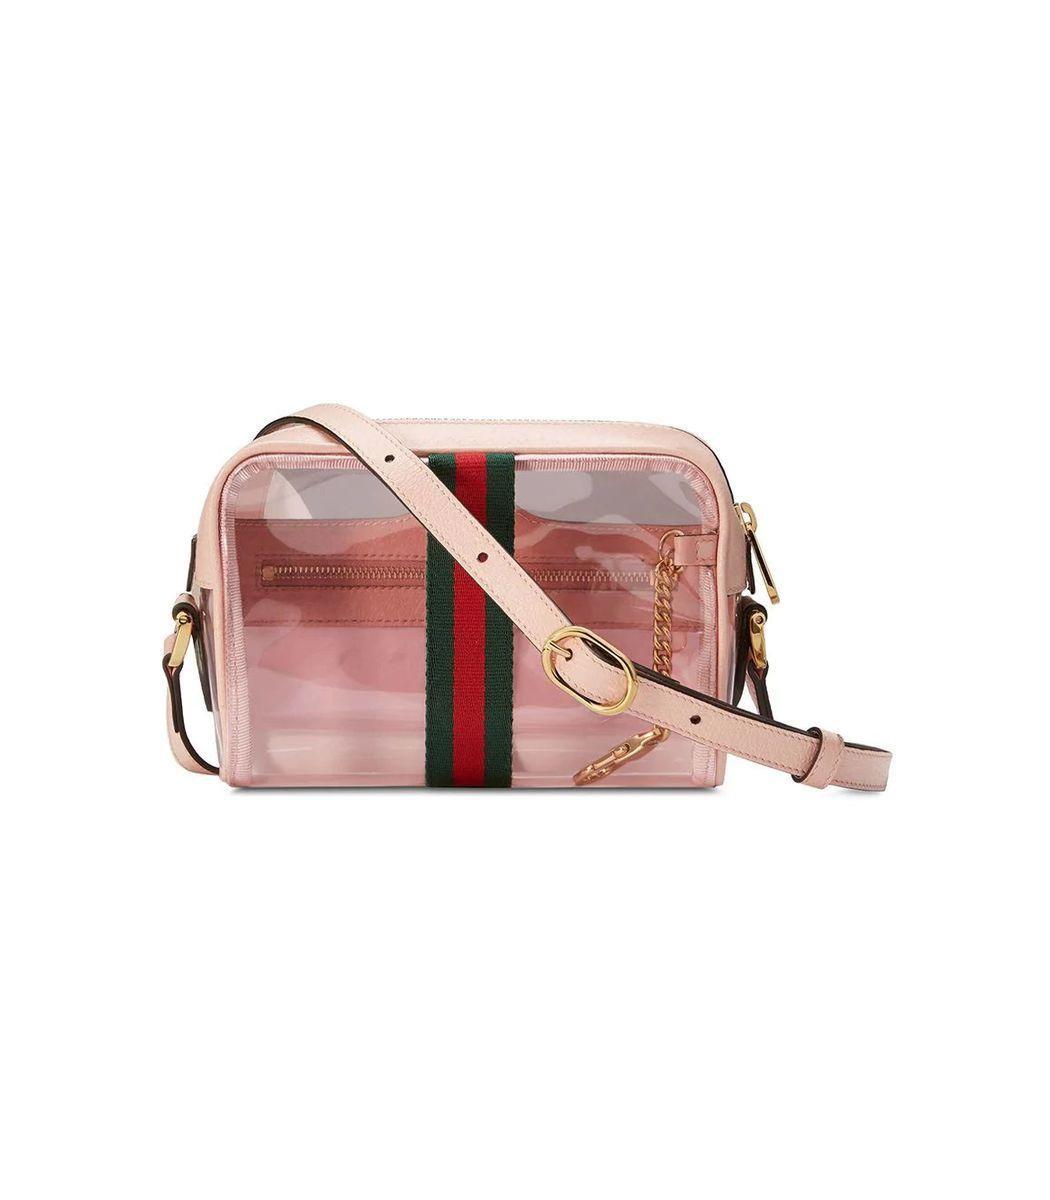 f506d6d2cde2 Gucci - Natural Ophidia Mini Transparent Bag - Lyst. View fullscreen